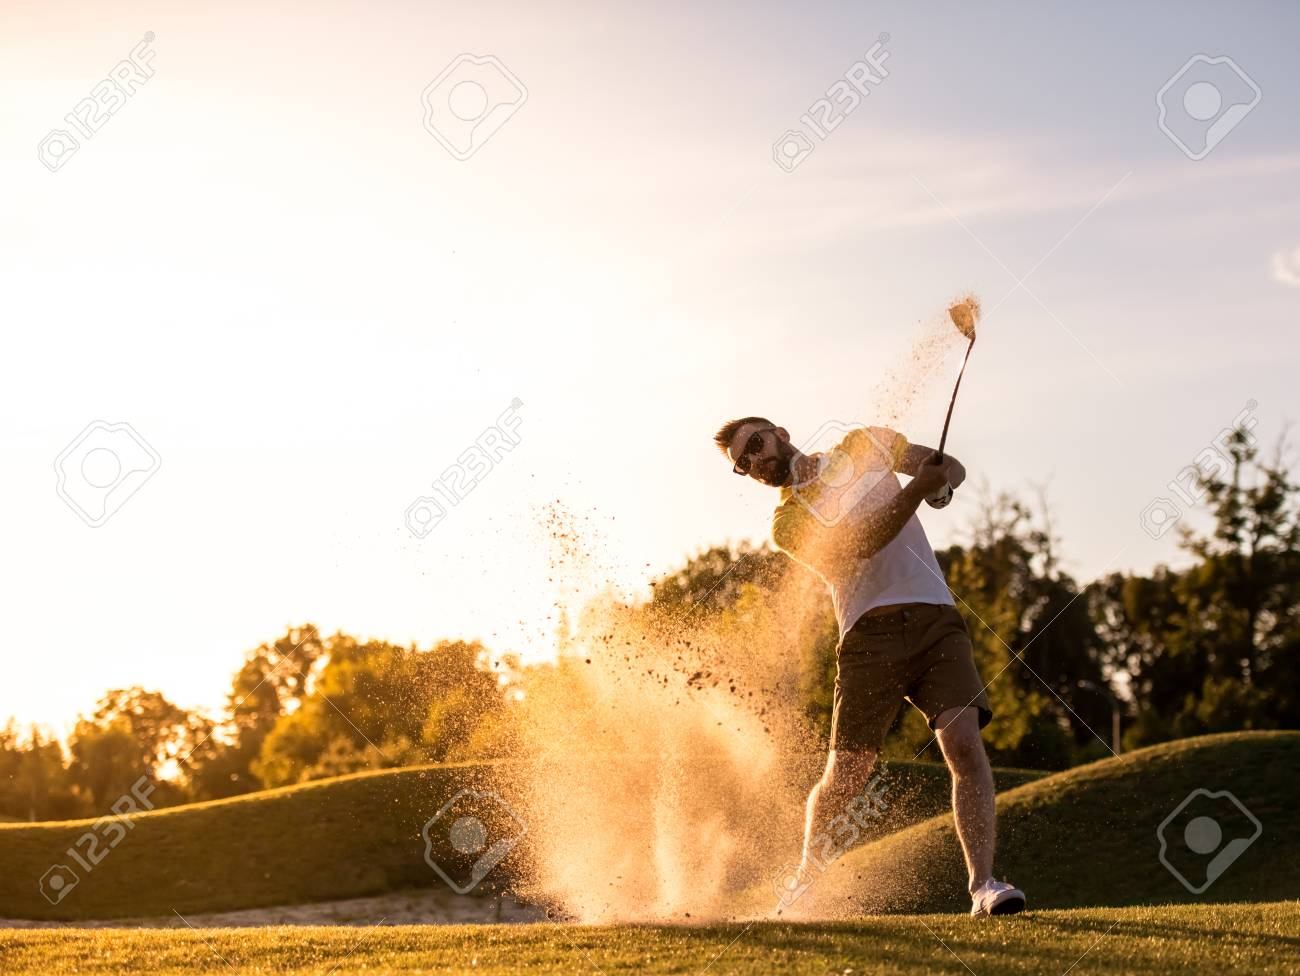 Handsome guy is using a golf club while playing golf, beautiful sun shining, splashed of sand - 85489125